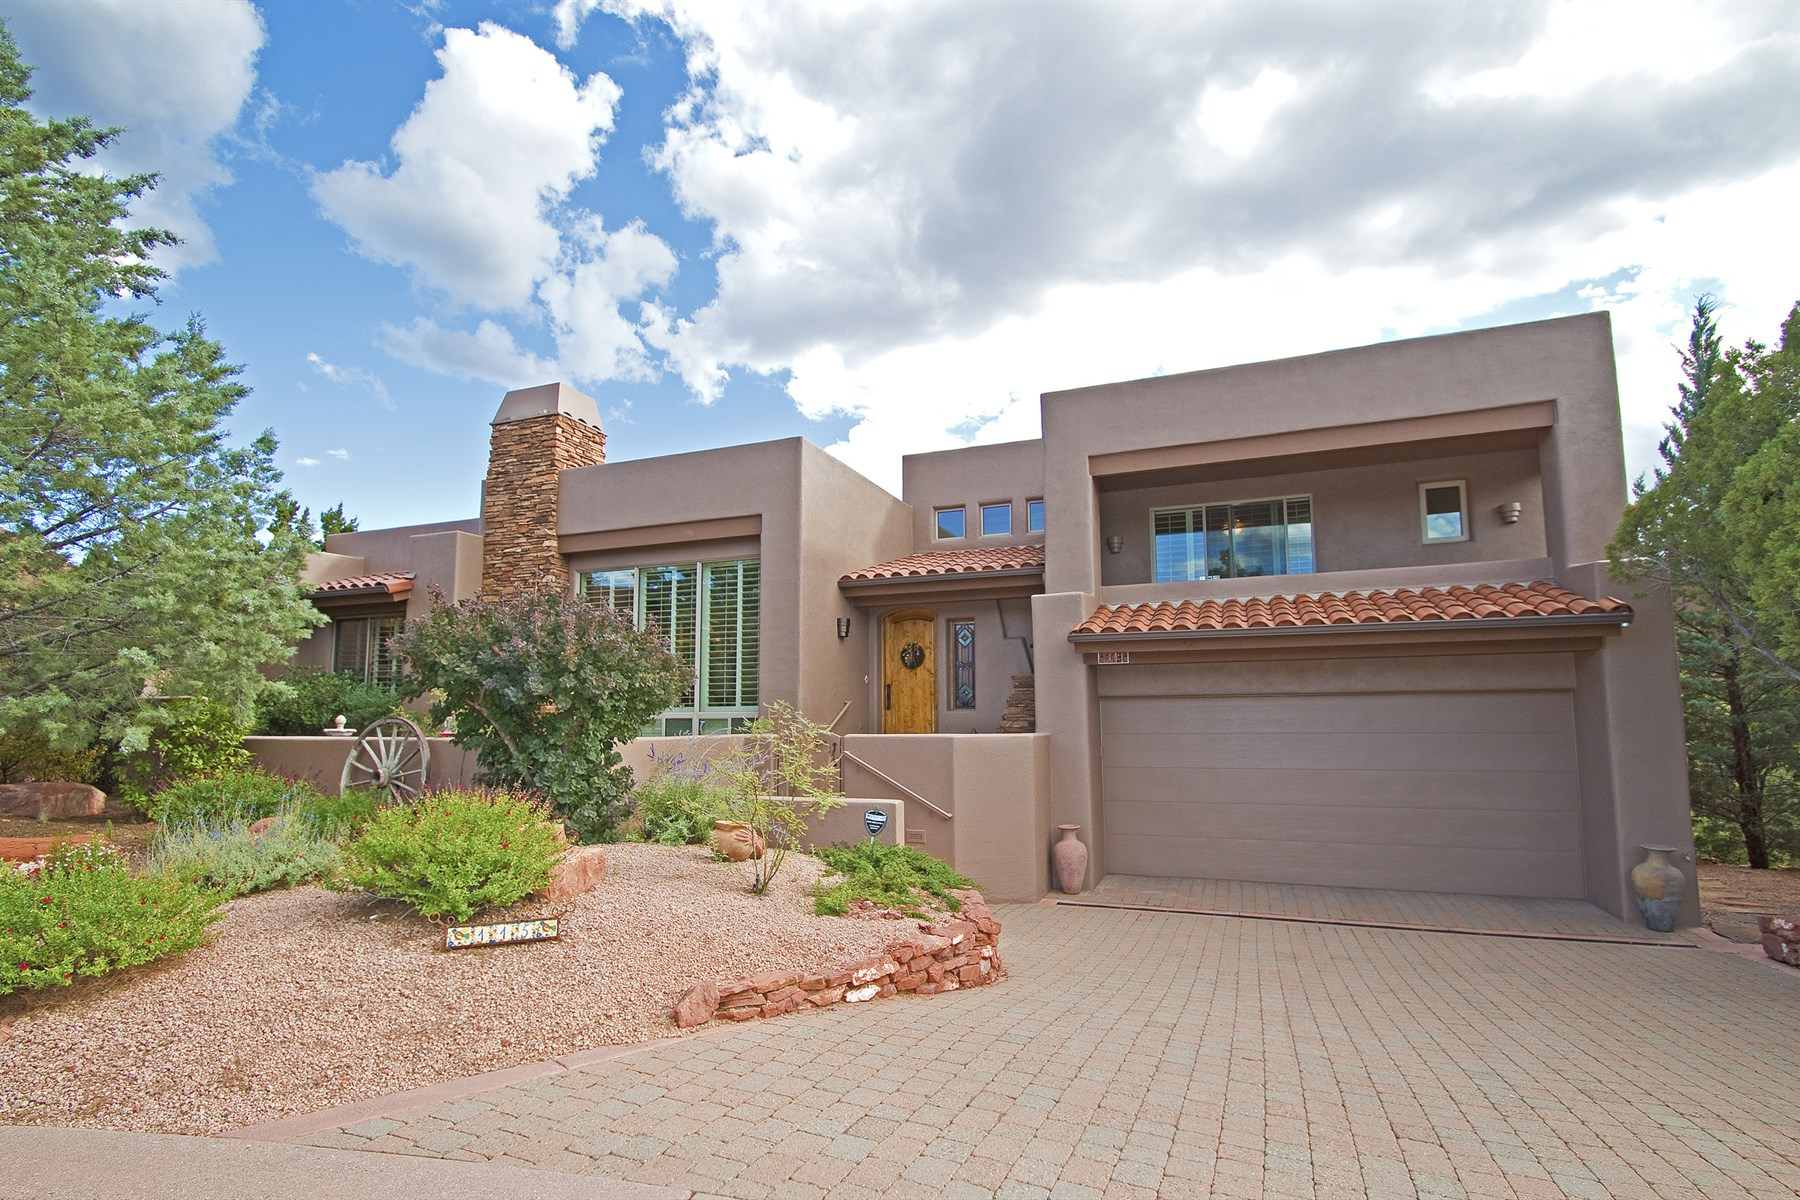 Einfamilienhaus für Verkauf beim Beautiful home in one of West Sedona's most desirable gated communities 115 Calle Marguerite Sedona, Arizona, 86336 Vereinigte Staaten